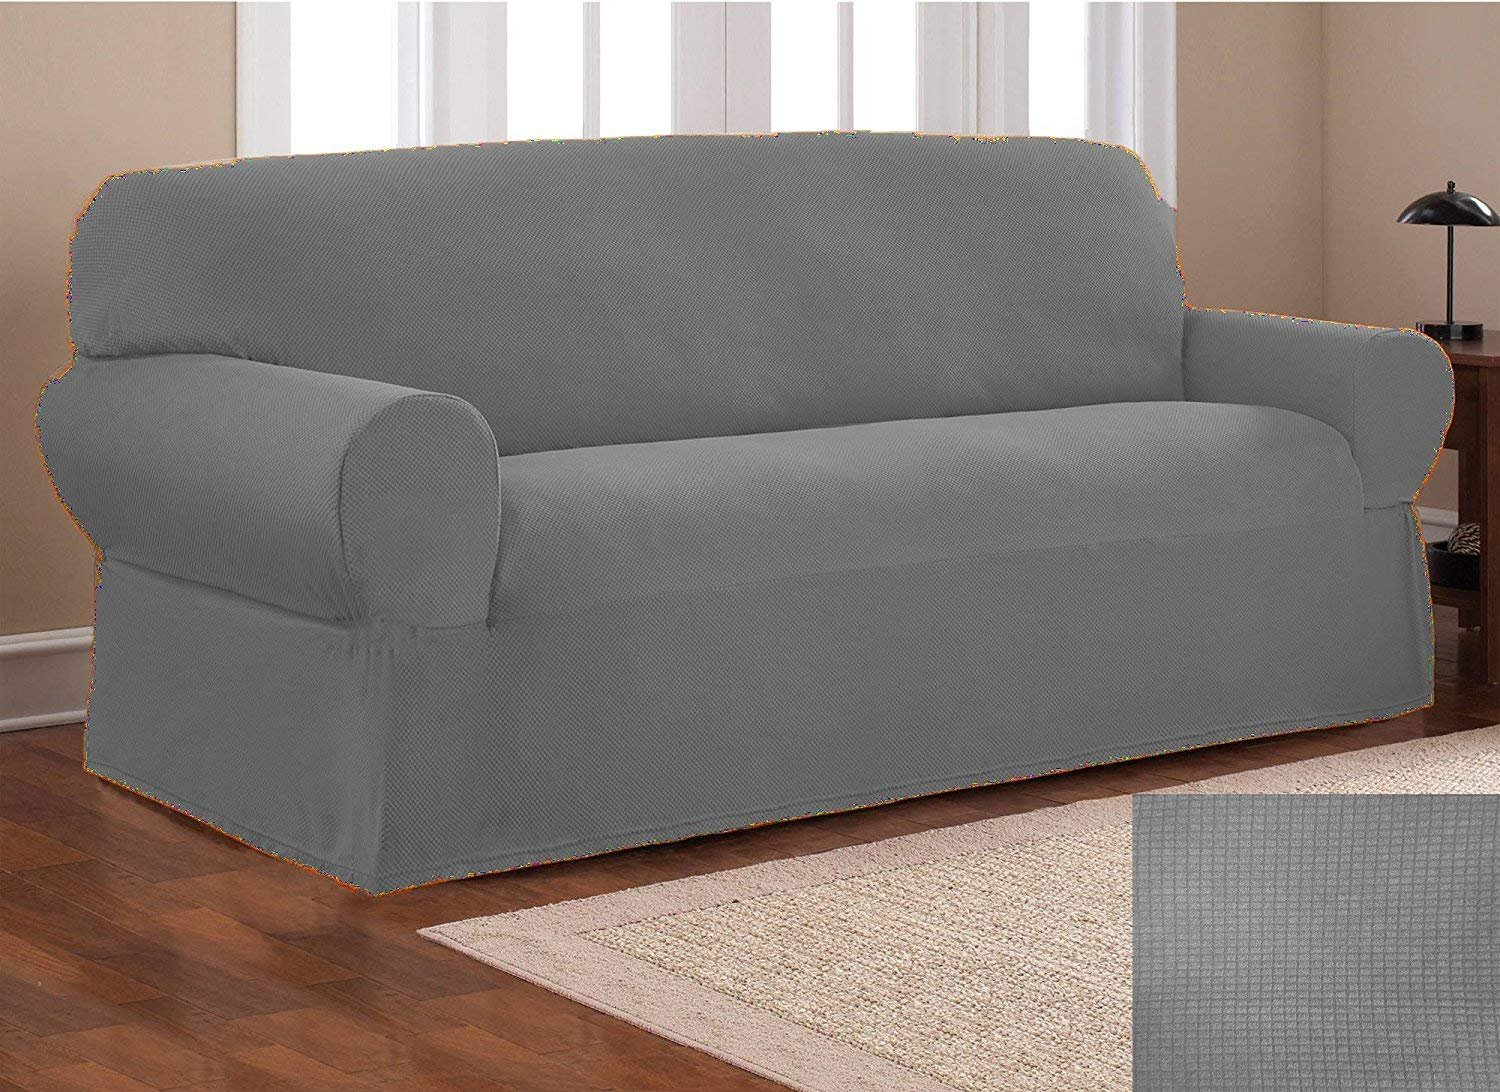 Fancy Collection Sure Fit Stretch Fabric Sofa Slipcover Sofa And Love Seat Covers Solid New #Stella (Light Grey, 2 pc Set)